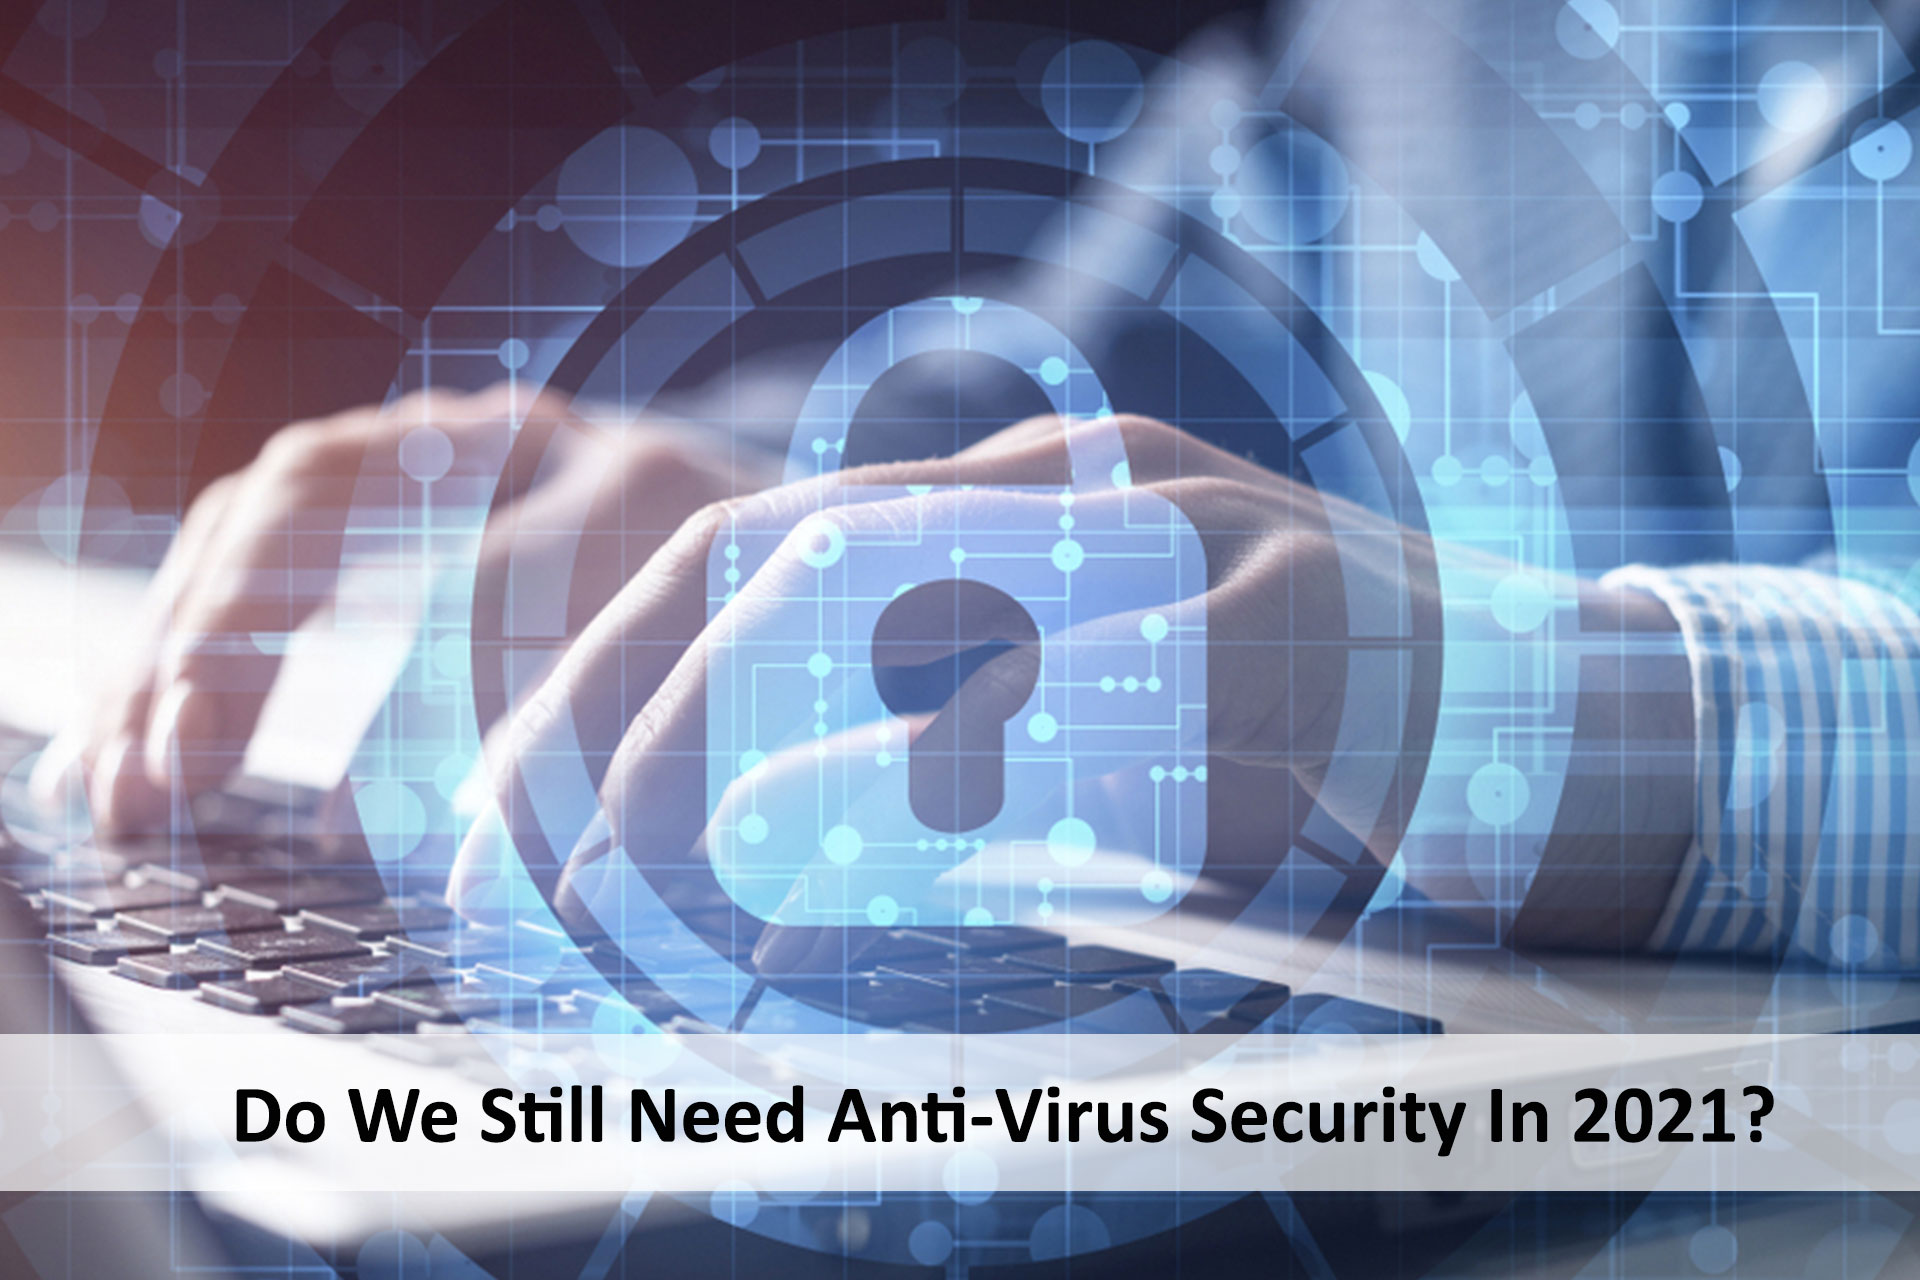 Do We Still Need Anti-Virus Security In 2021?